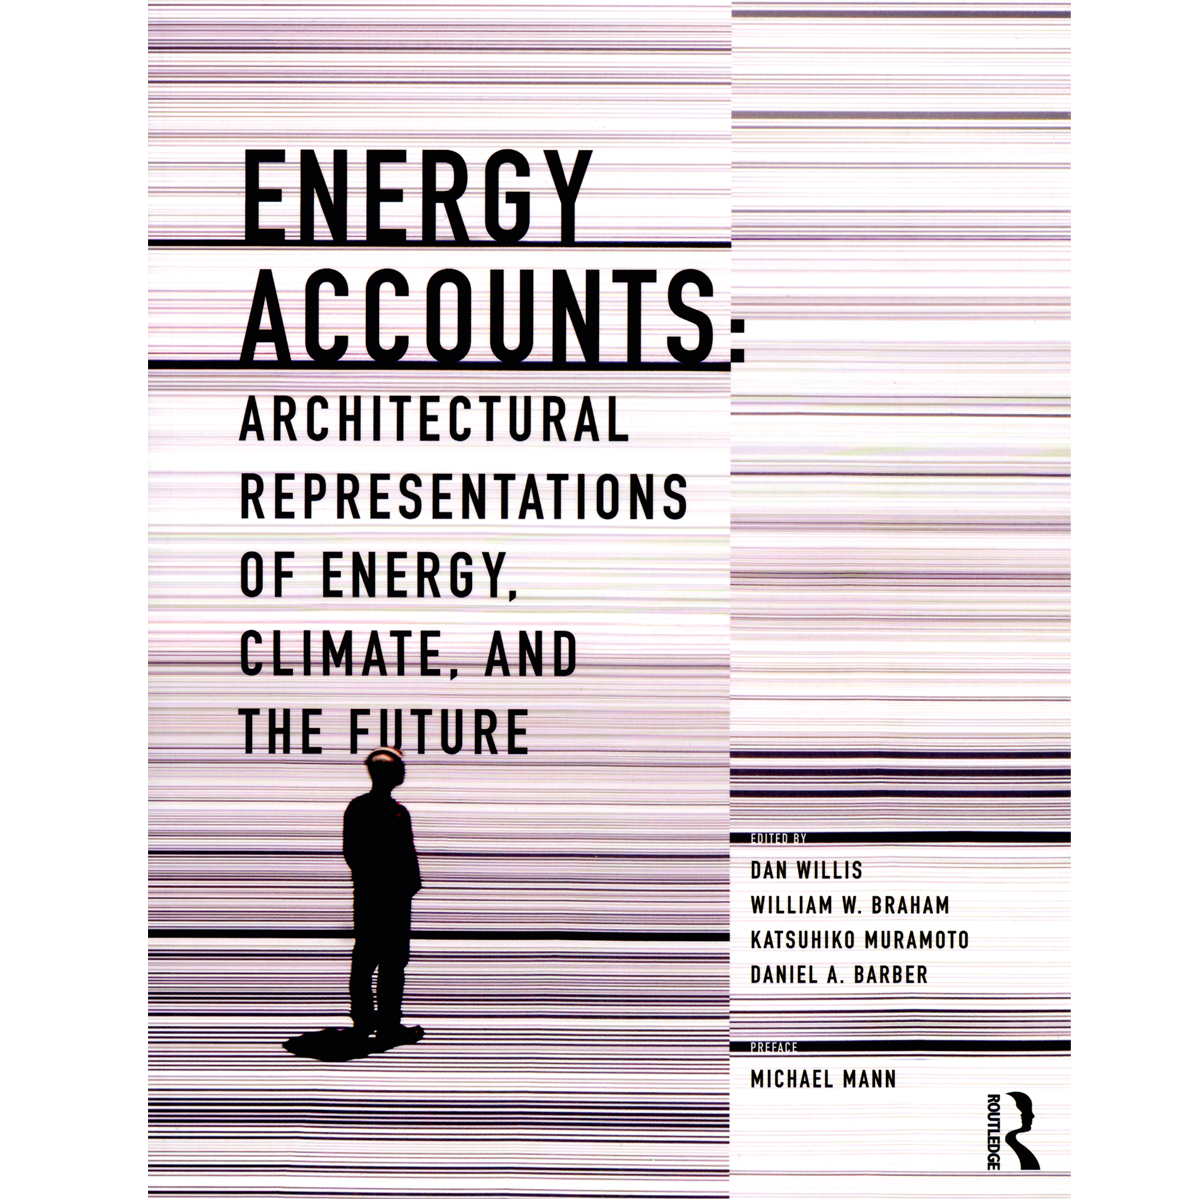 Energy Accounts: Architectural Representations of Energy, Climate and the Future